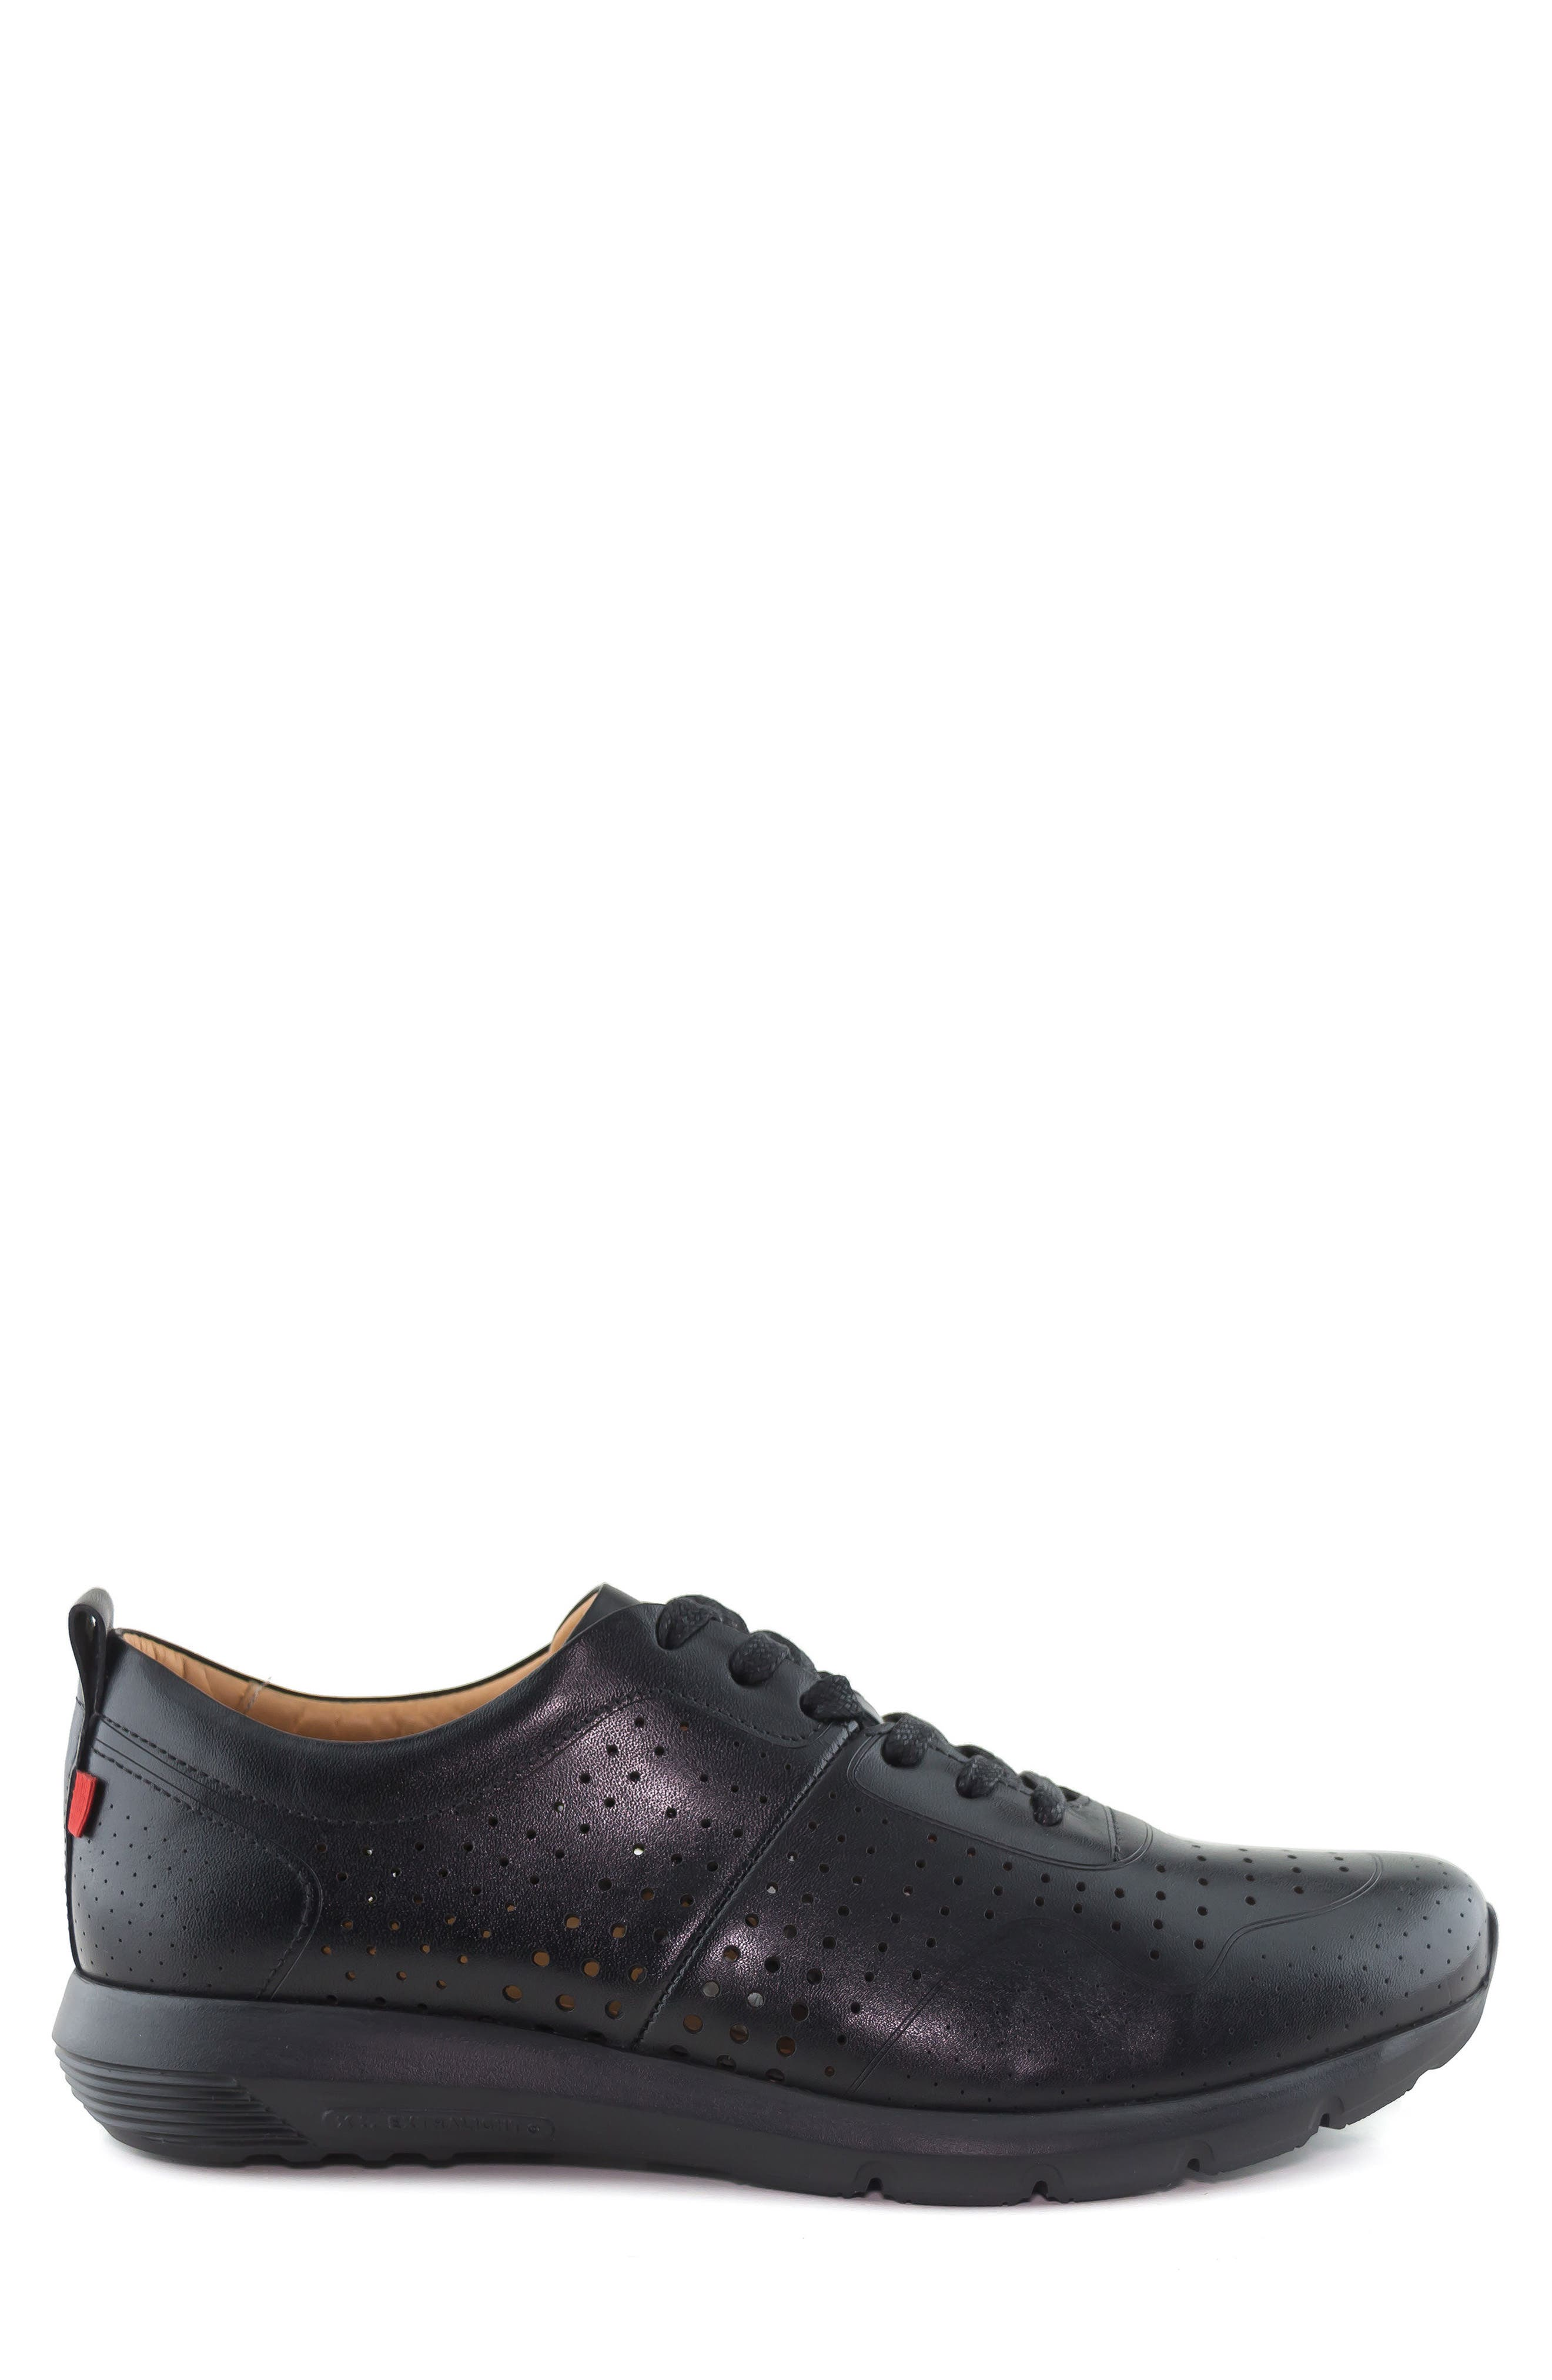 MARC JOSEPH NEW YORK, Grand Central Perforated Sneaker, Alternate thumbnail 3, color, BLACK